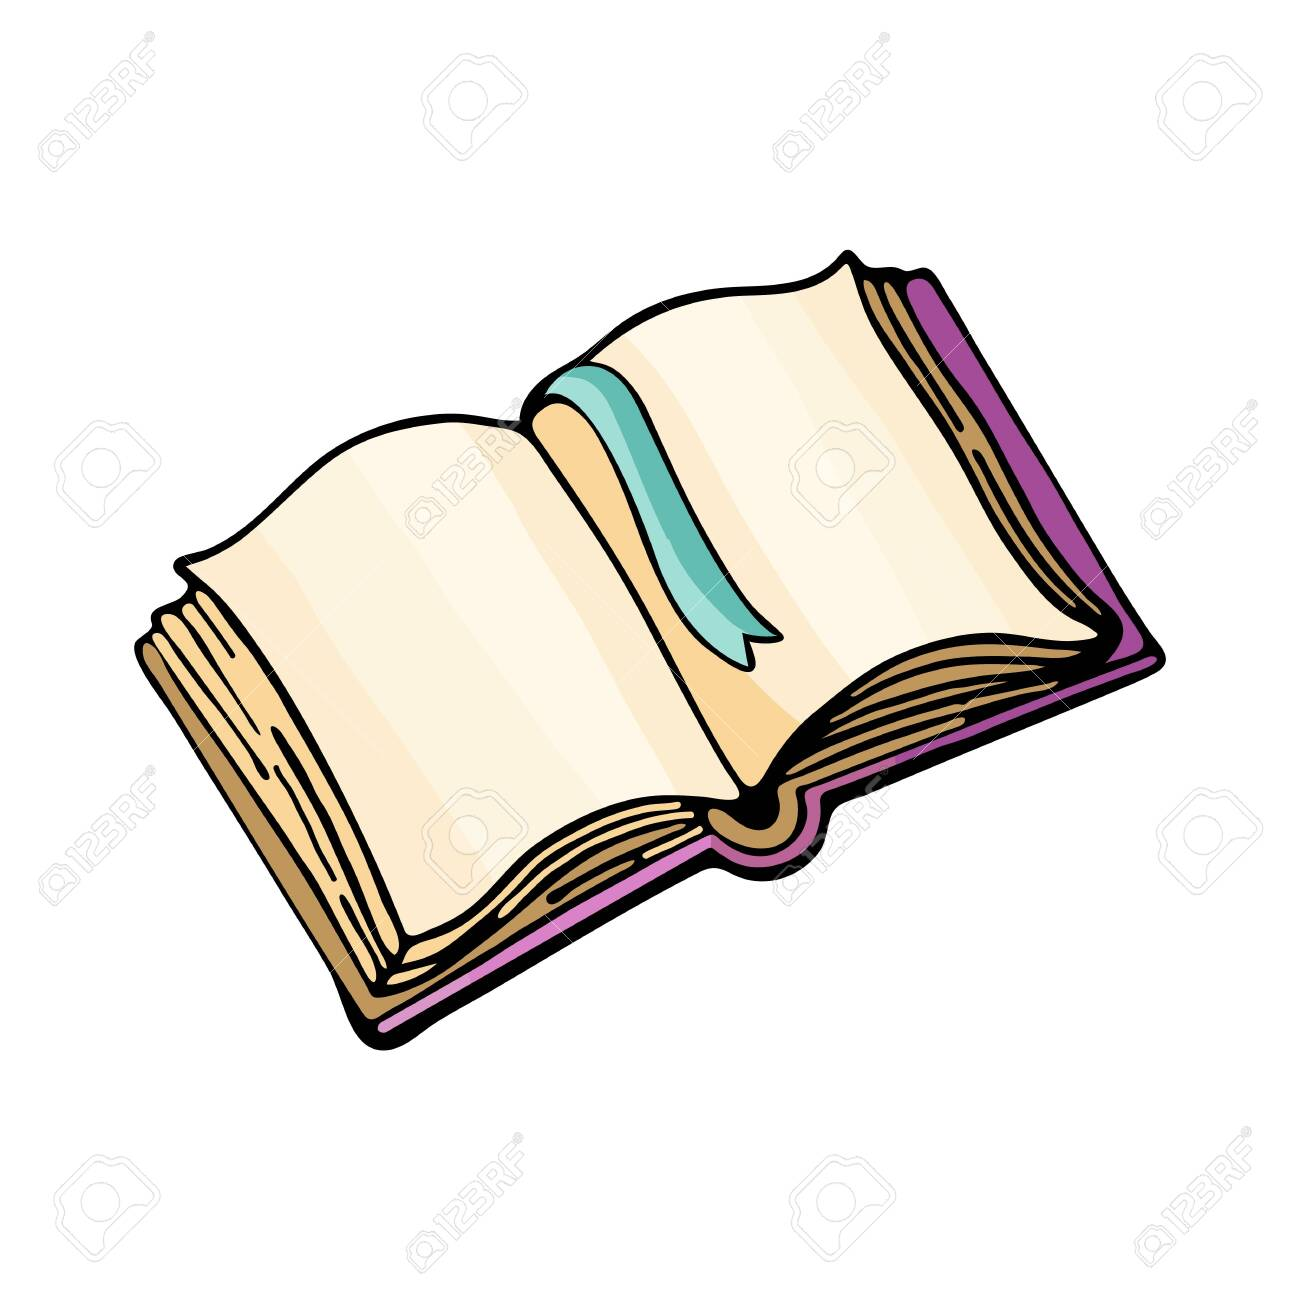 Open book or tutorial, vector drawing isolated on white background. Cartoon Doodle of cute, colorful illustrations. Funny works of art. Hand-drawn sketch. Logo design, symbol, emblem, sticker. - 129259531